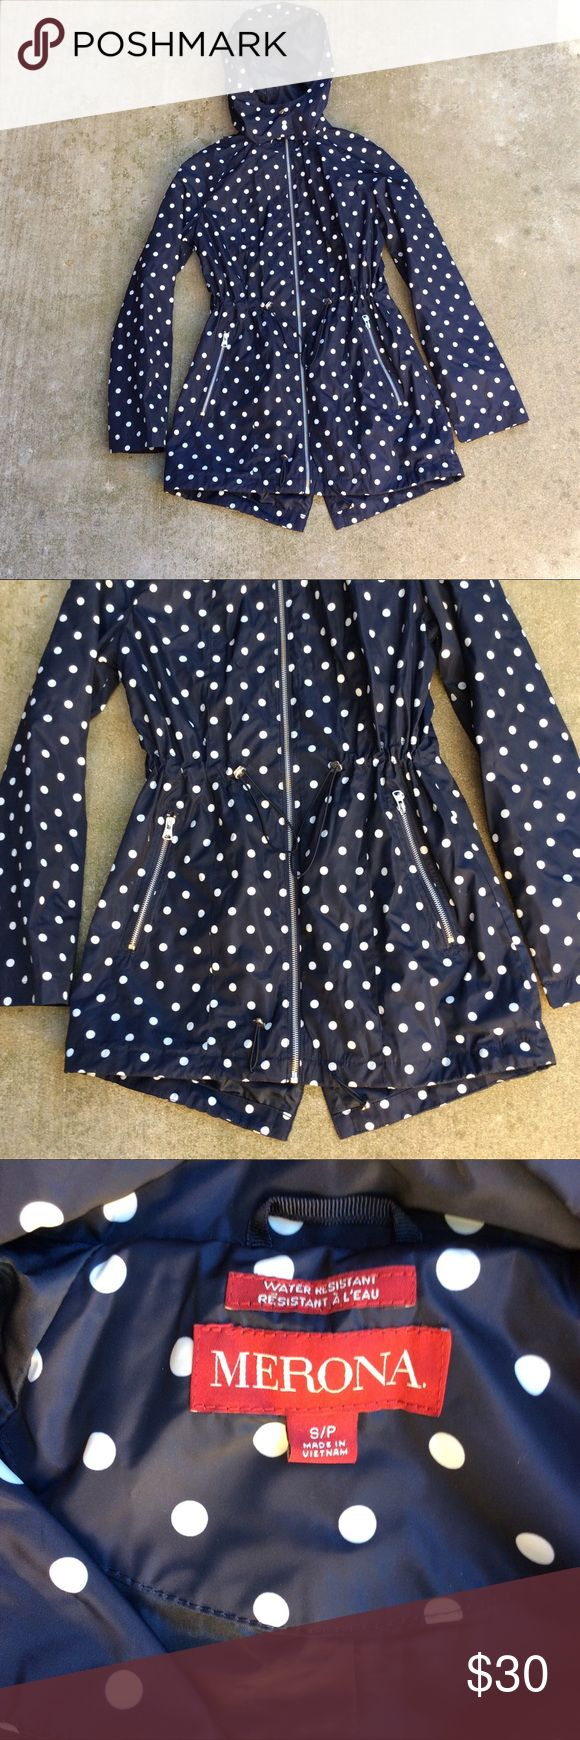 """Merona polka dot rain jacket Women's merona rain jacket   Lightweight   Size small   Blue and white   Polka dot pattern   Hooded   Water resistant   back vent flap   Approx measurements laying flat:  Pit to pit 17""""  Pit to bottom hem 19""""   Excellent condition Merona Jackets & Coats"""